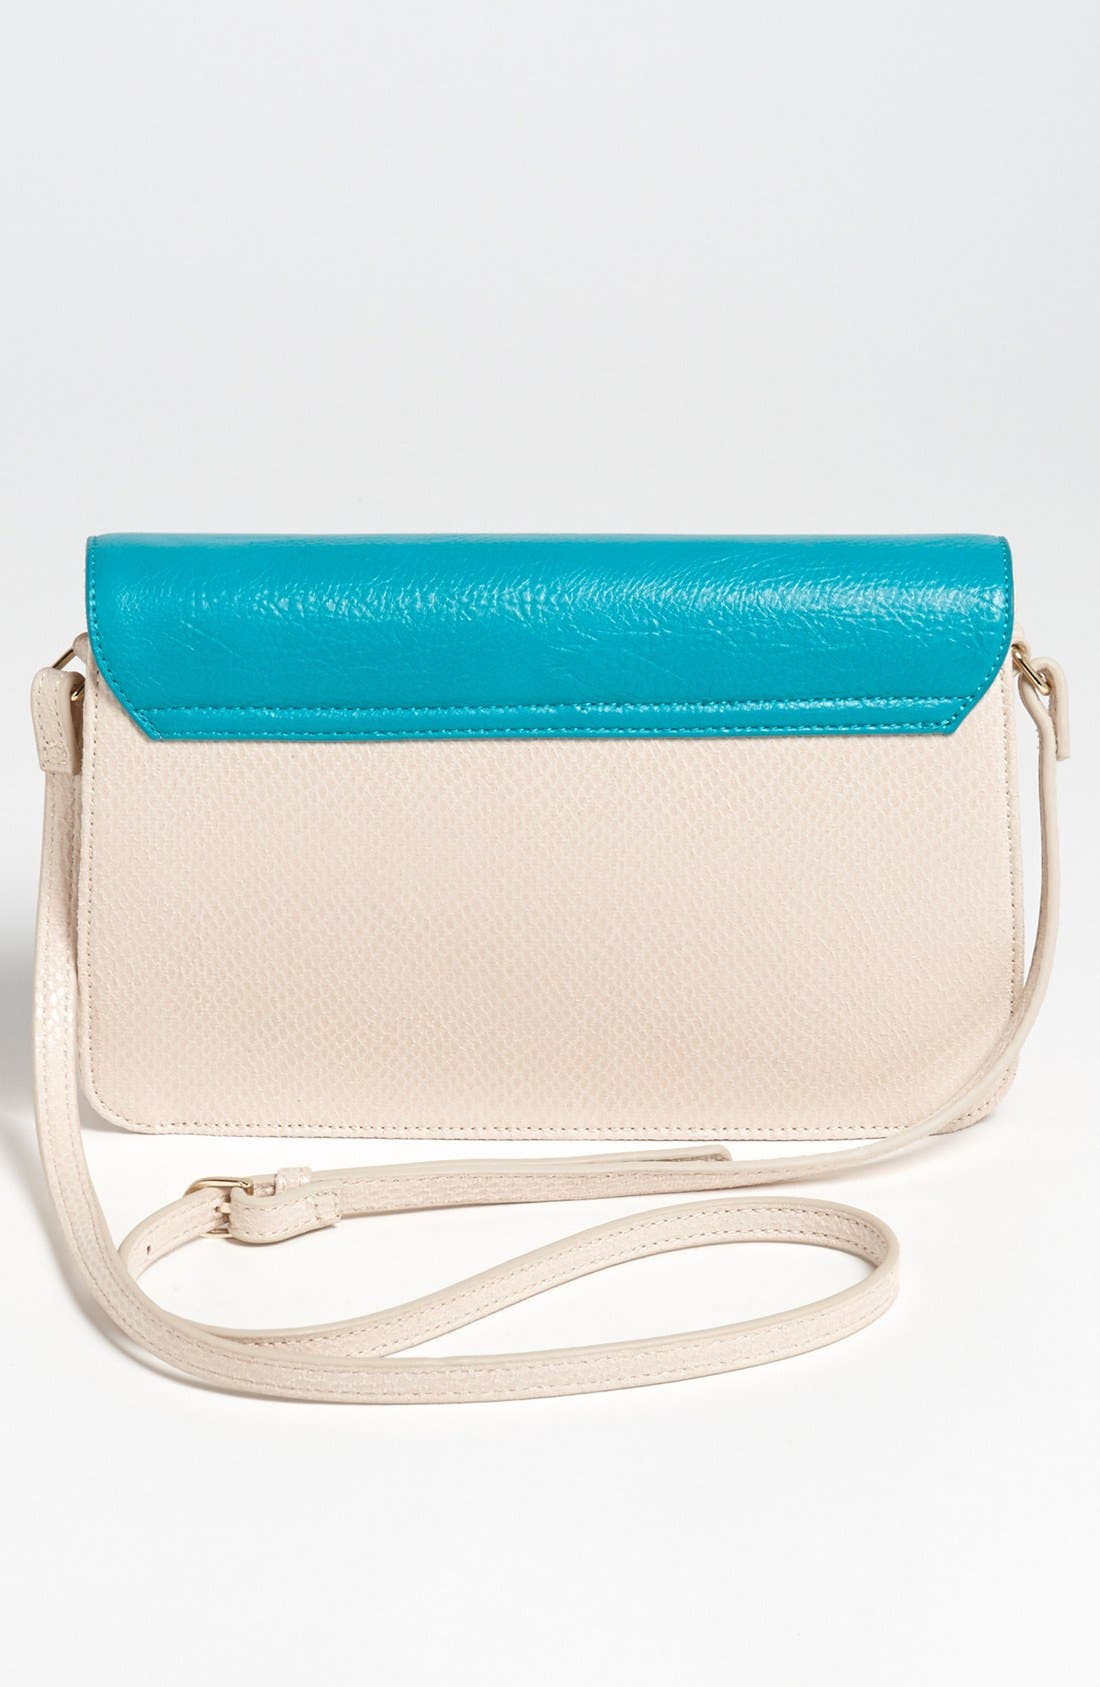 Alternate Image 3  - Izzy & Ali 'Giselle' Faux Leather Shoulder Bag